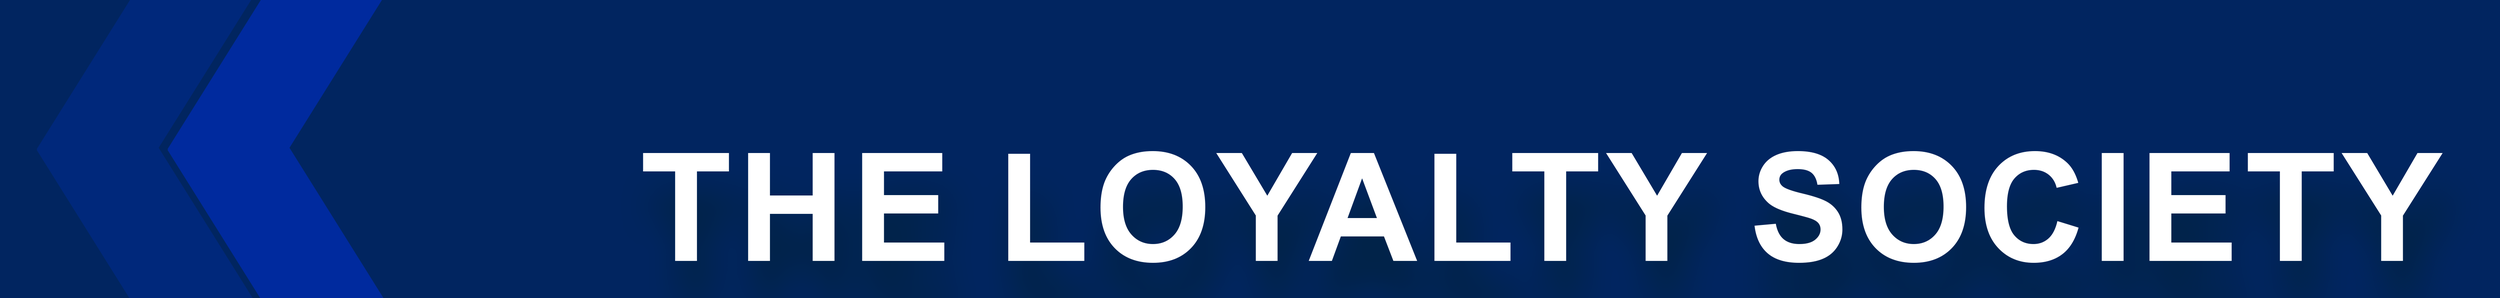 The Loyalty Society page banner